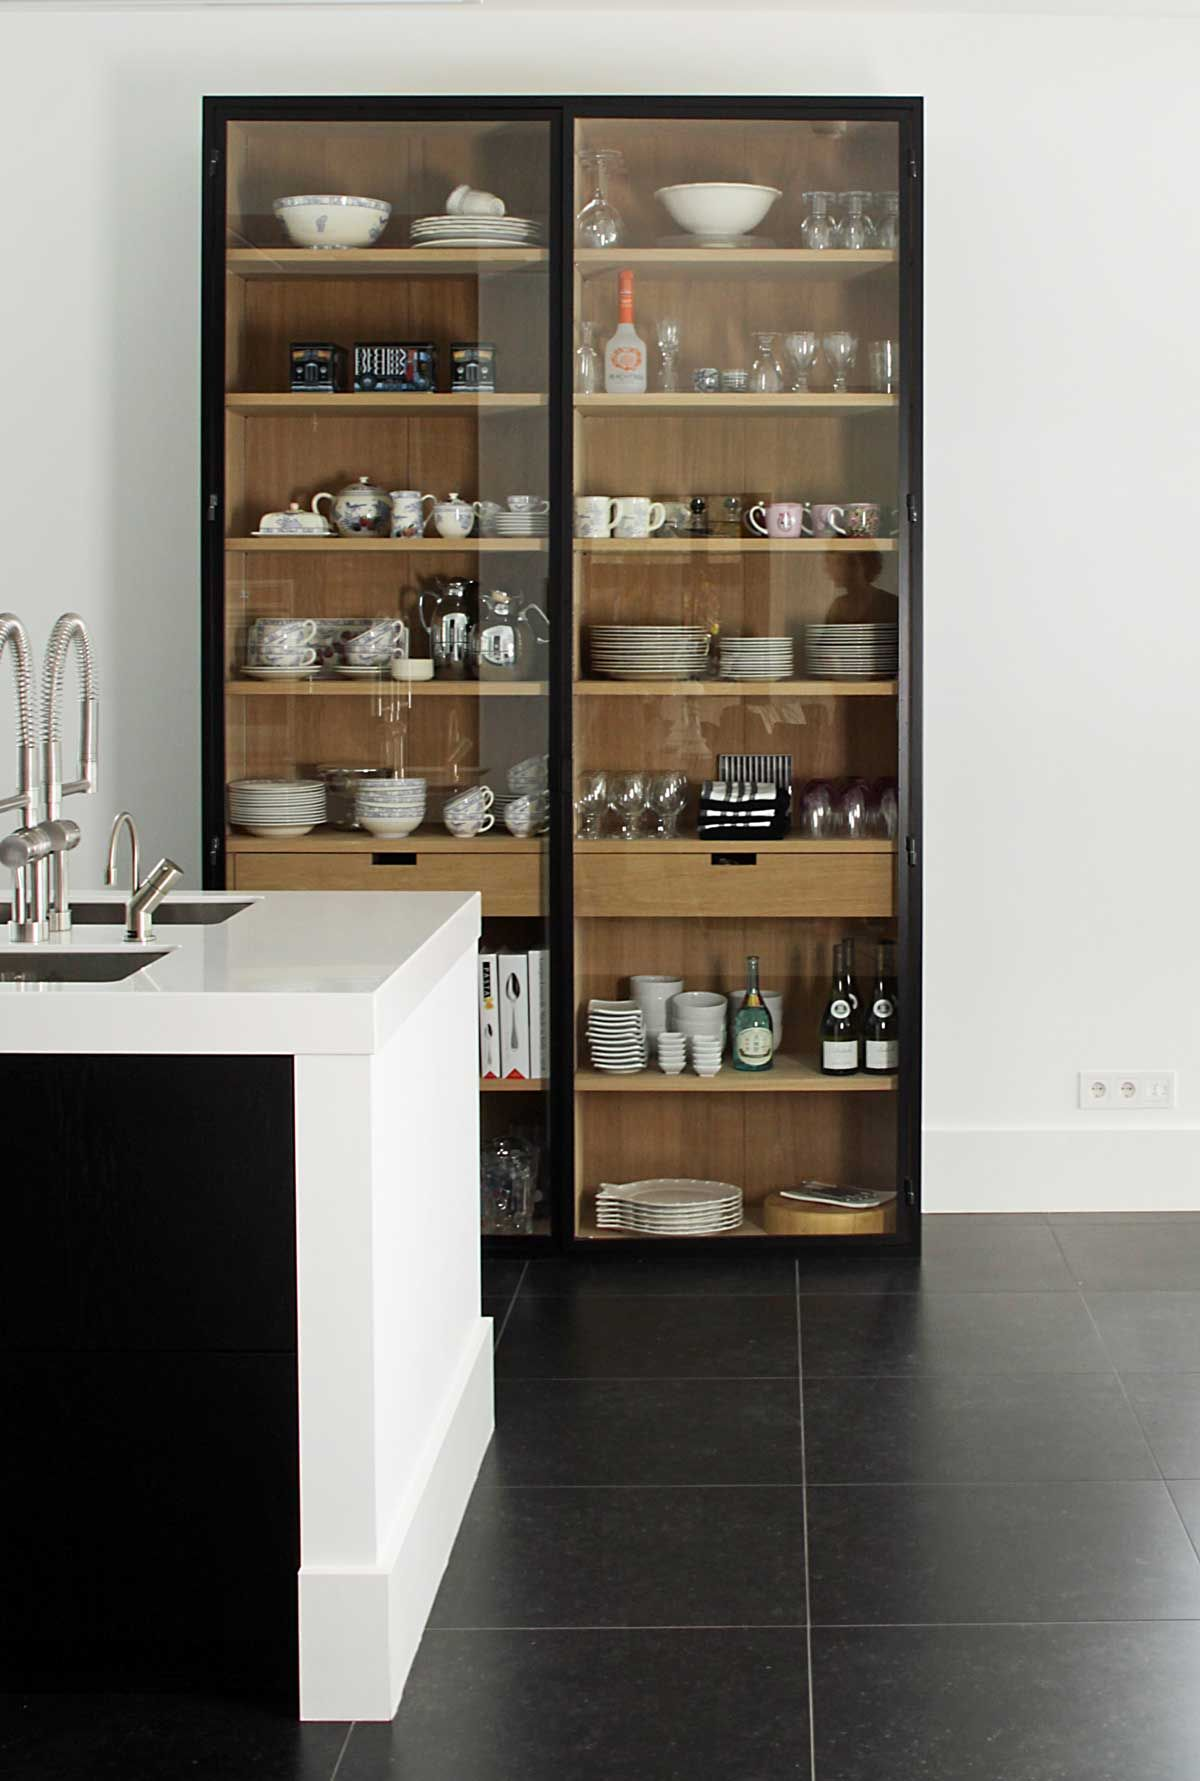 Glass cabinets for your kitchen make it easy to find exactly what